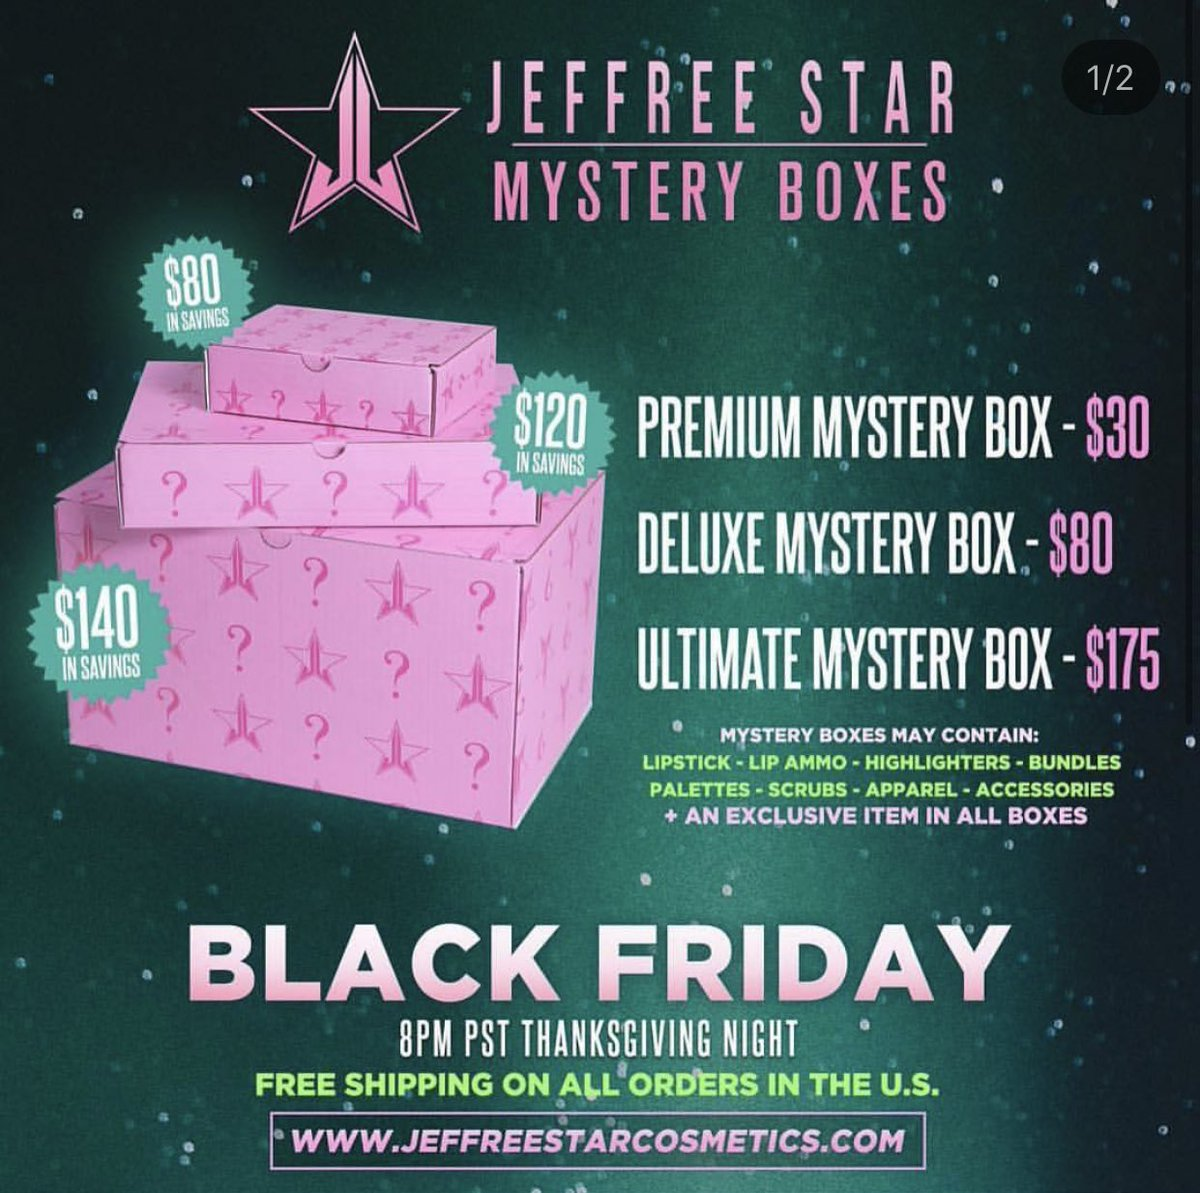 WOW!!!! Who is ready for #BlackFriday  &amp; #CyberMonday  Madness ?!?!?! Here is a preview  for @JeffreeStar Cosmetics Amazing Sales !!!  and Mystery  Boxes  Mystery Boxes: Premium $30 Deluxe $80 Ultimate $175 Online   NOVEMBER 23RD @ 8pm PST on their website <br>http://pic.twitter.com/BDwtHbYCeb